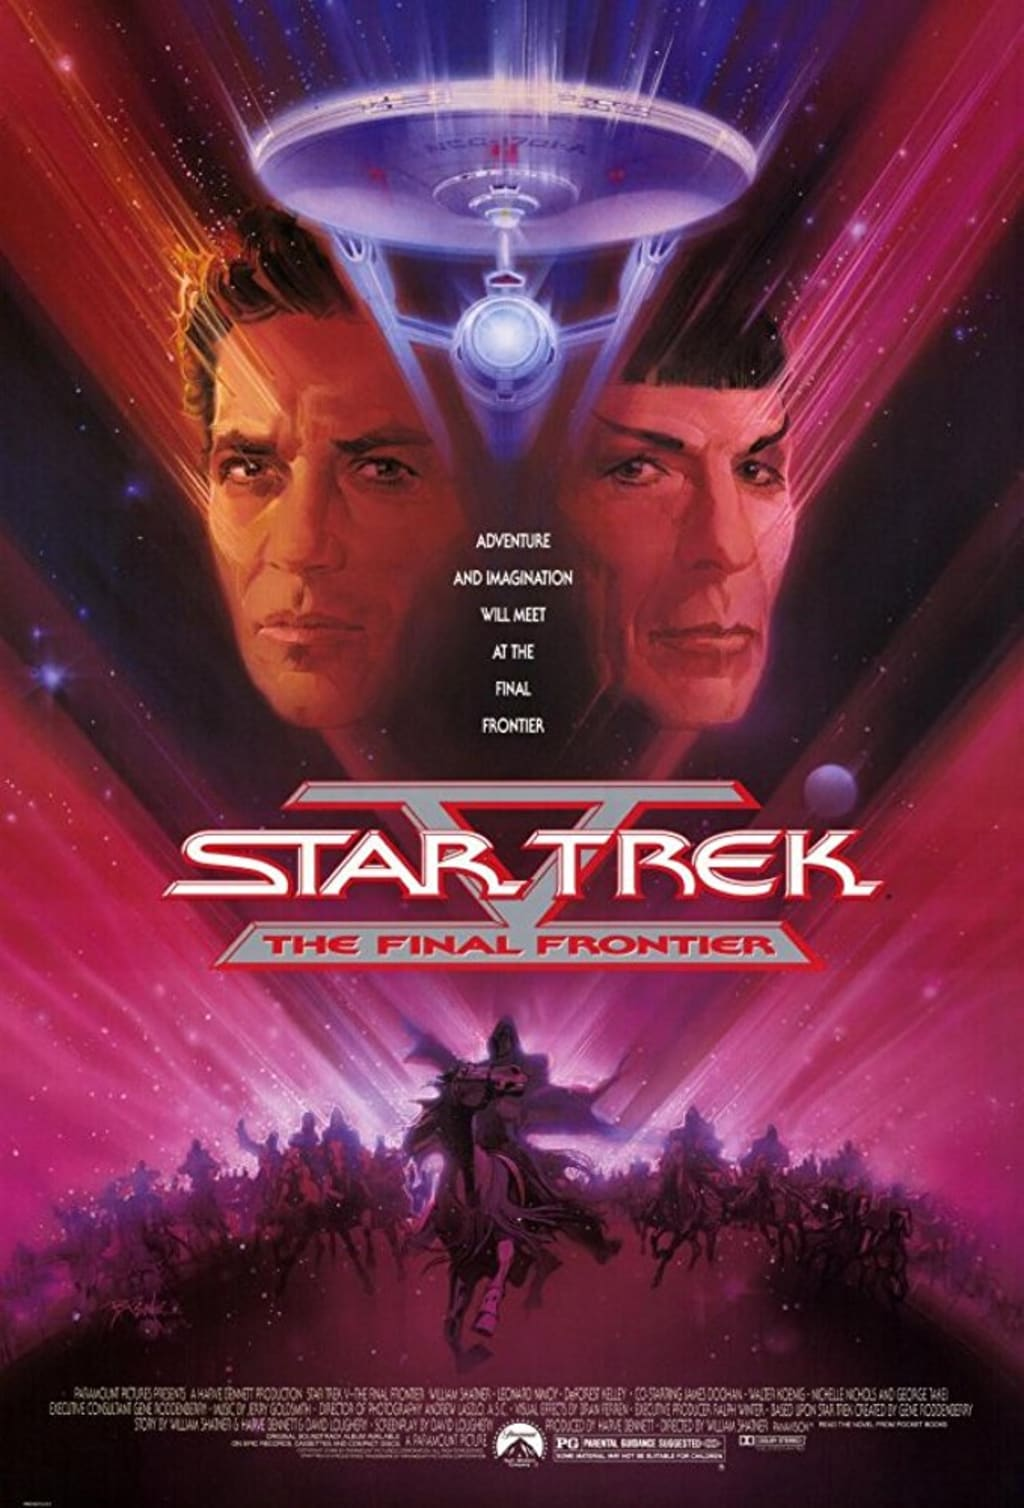 'Star Trek V' Is Pretty Hard to Defend, But I'm Going to Try Anyway